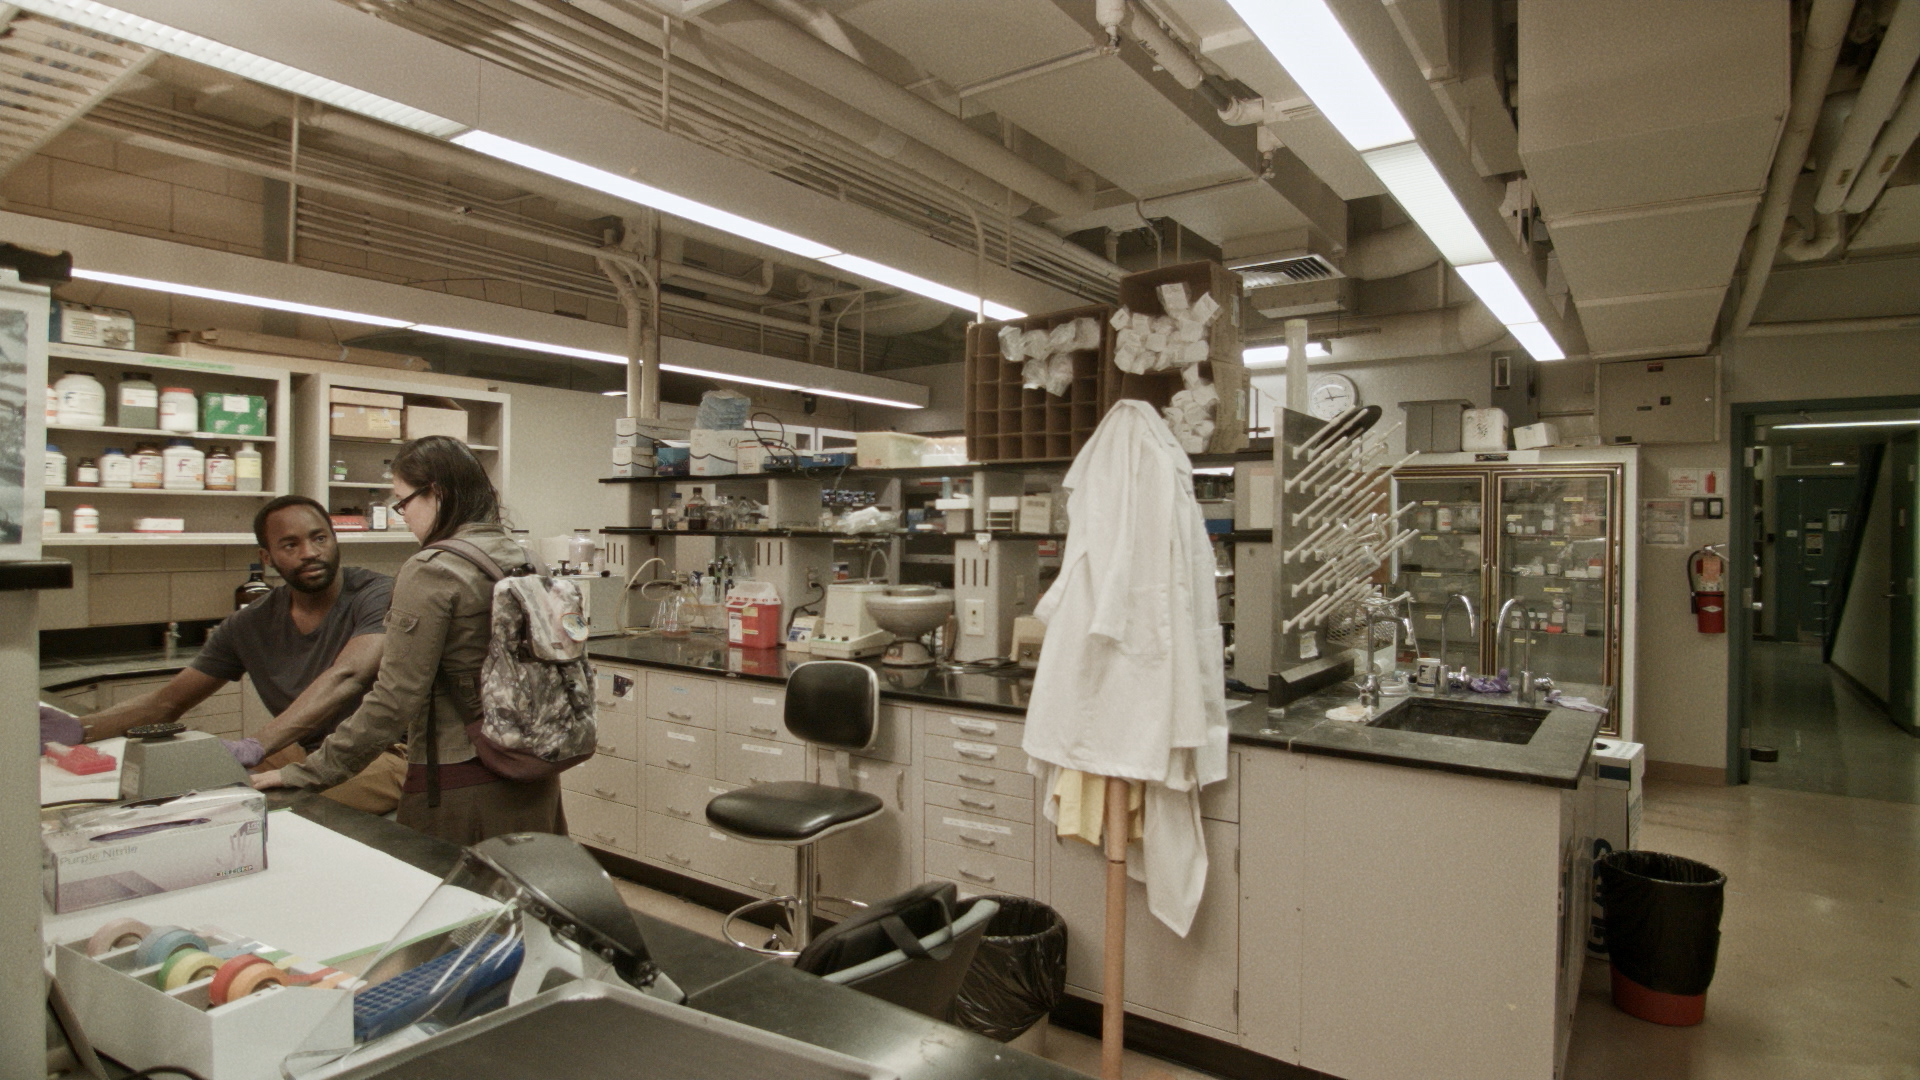 Still from ANYA with DR. SEYMOUR LIVINGSTON (Motell Foster) and RIKA ENDO (Olivia Oguma) in Dr. Andreas Phenning's lab. Still from ANYA by Jacob Okada.